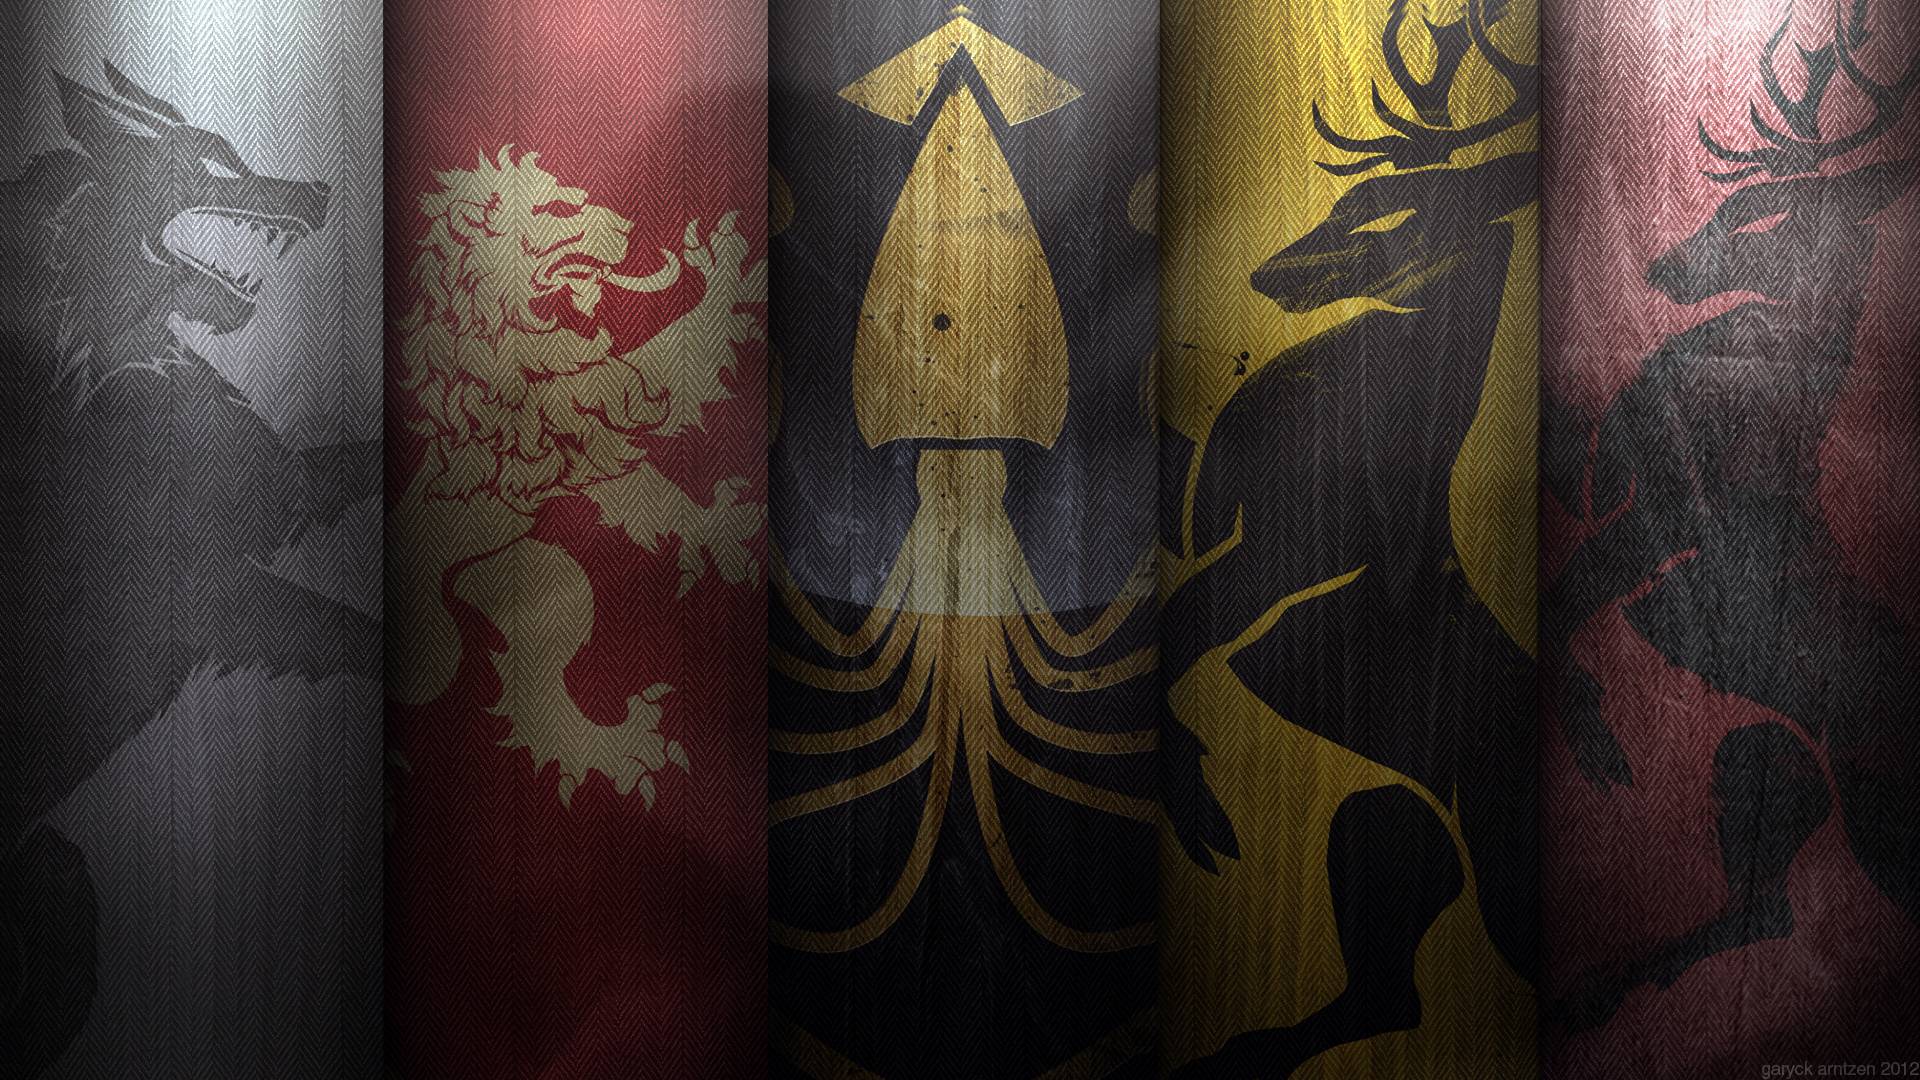 Game of Thrones Season 4 Wallpapers for iPad iPad Mini Tricks 1920x1080